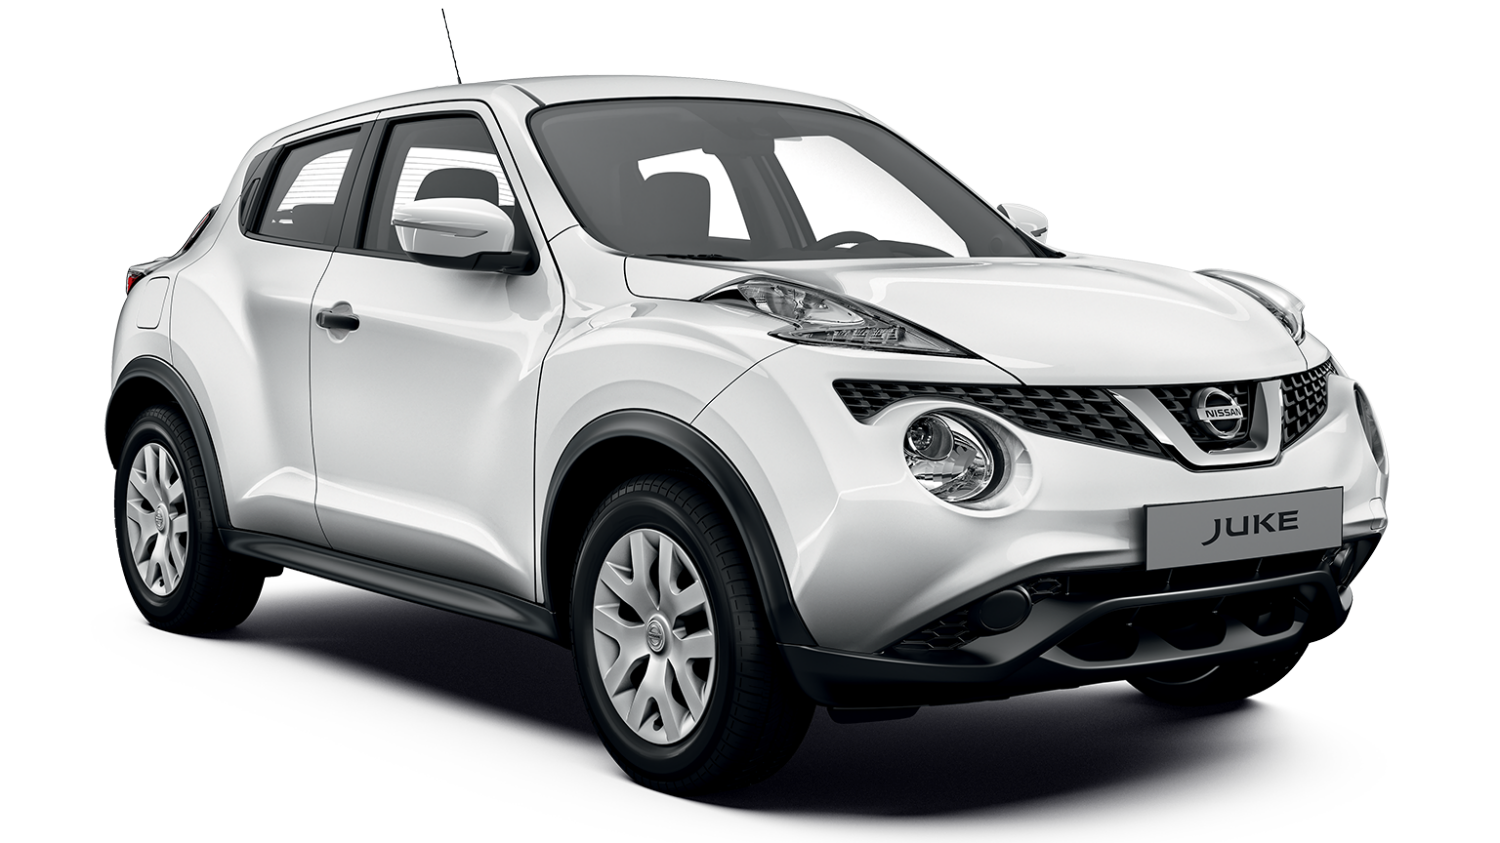 nissan sv pictures price cnynewcars juke awd specs com review